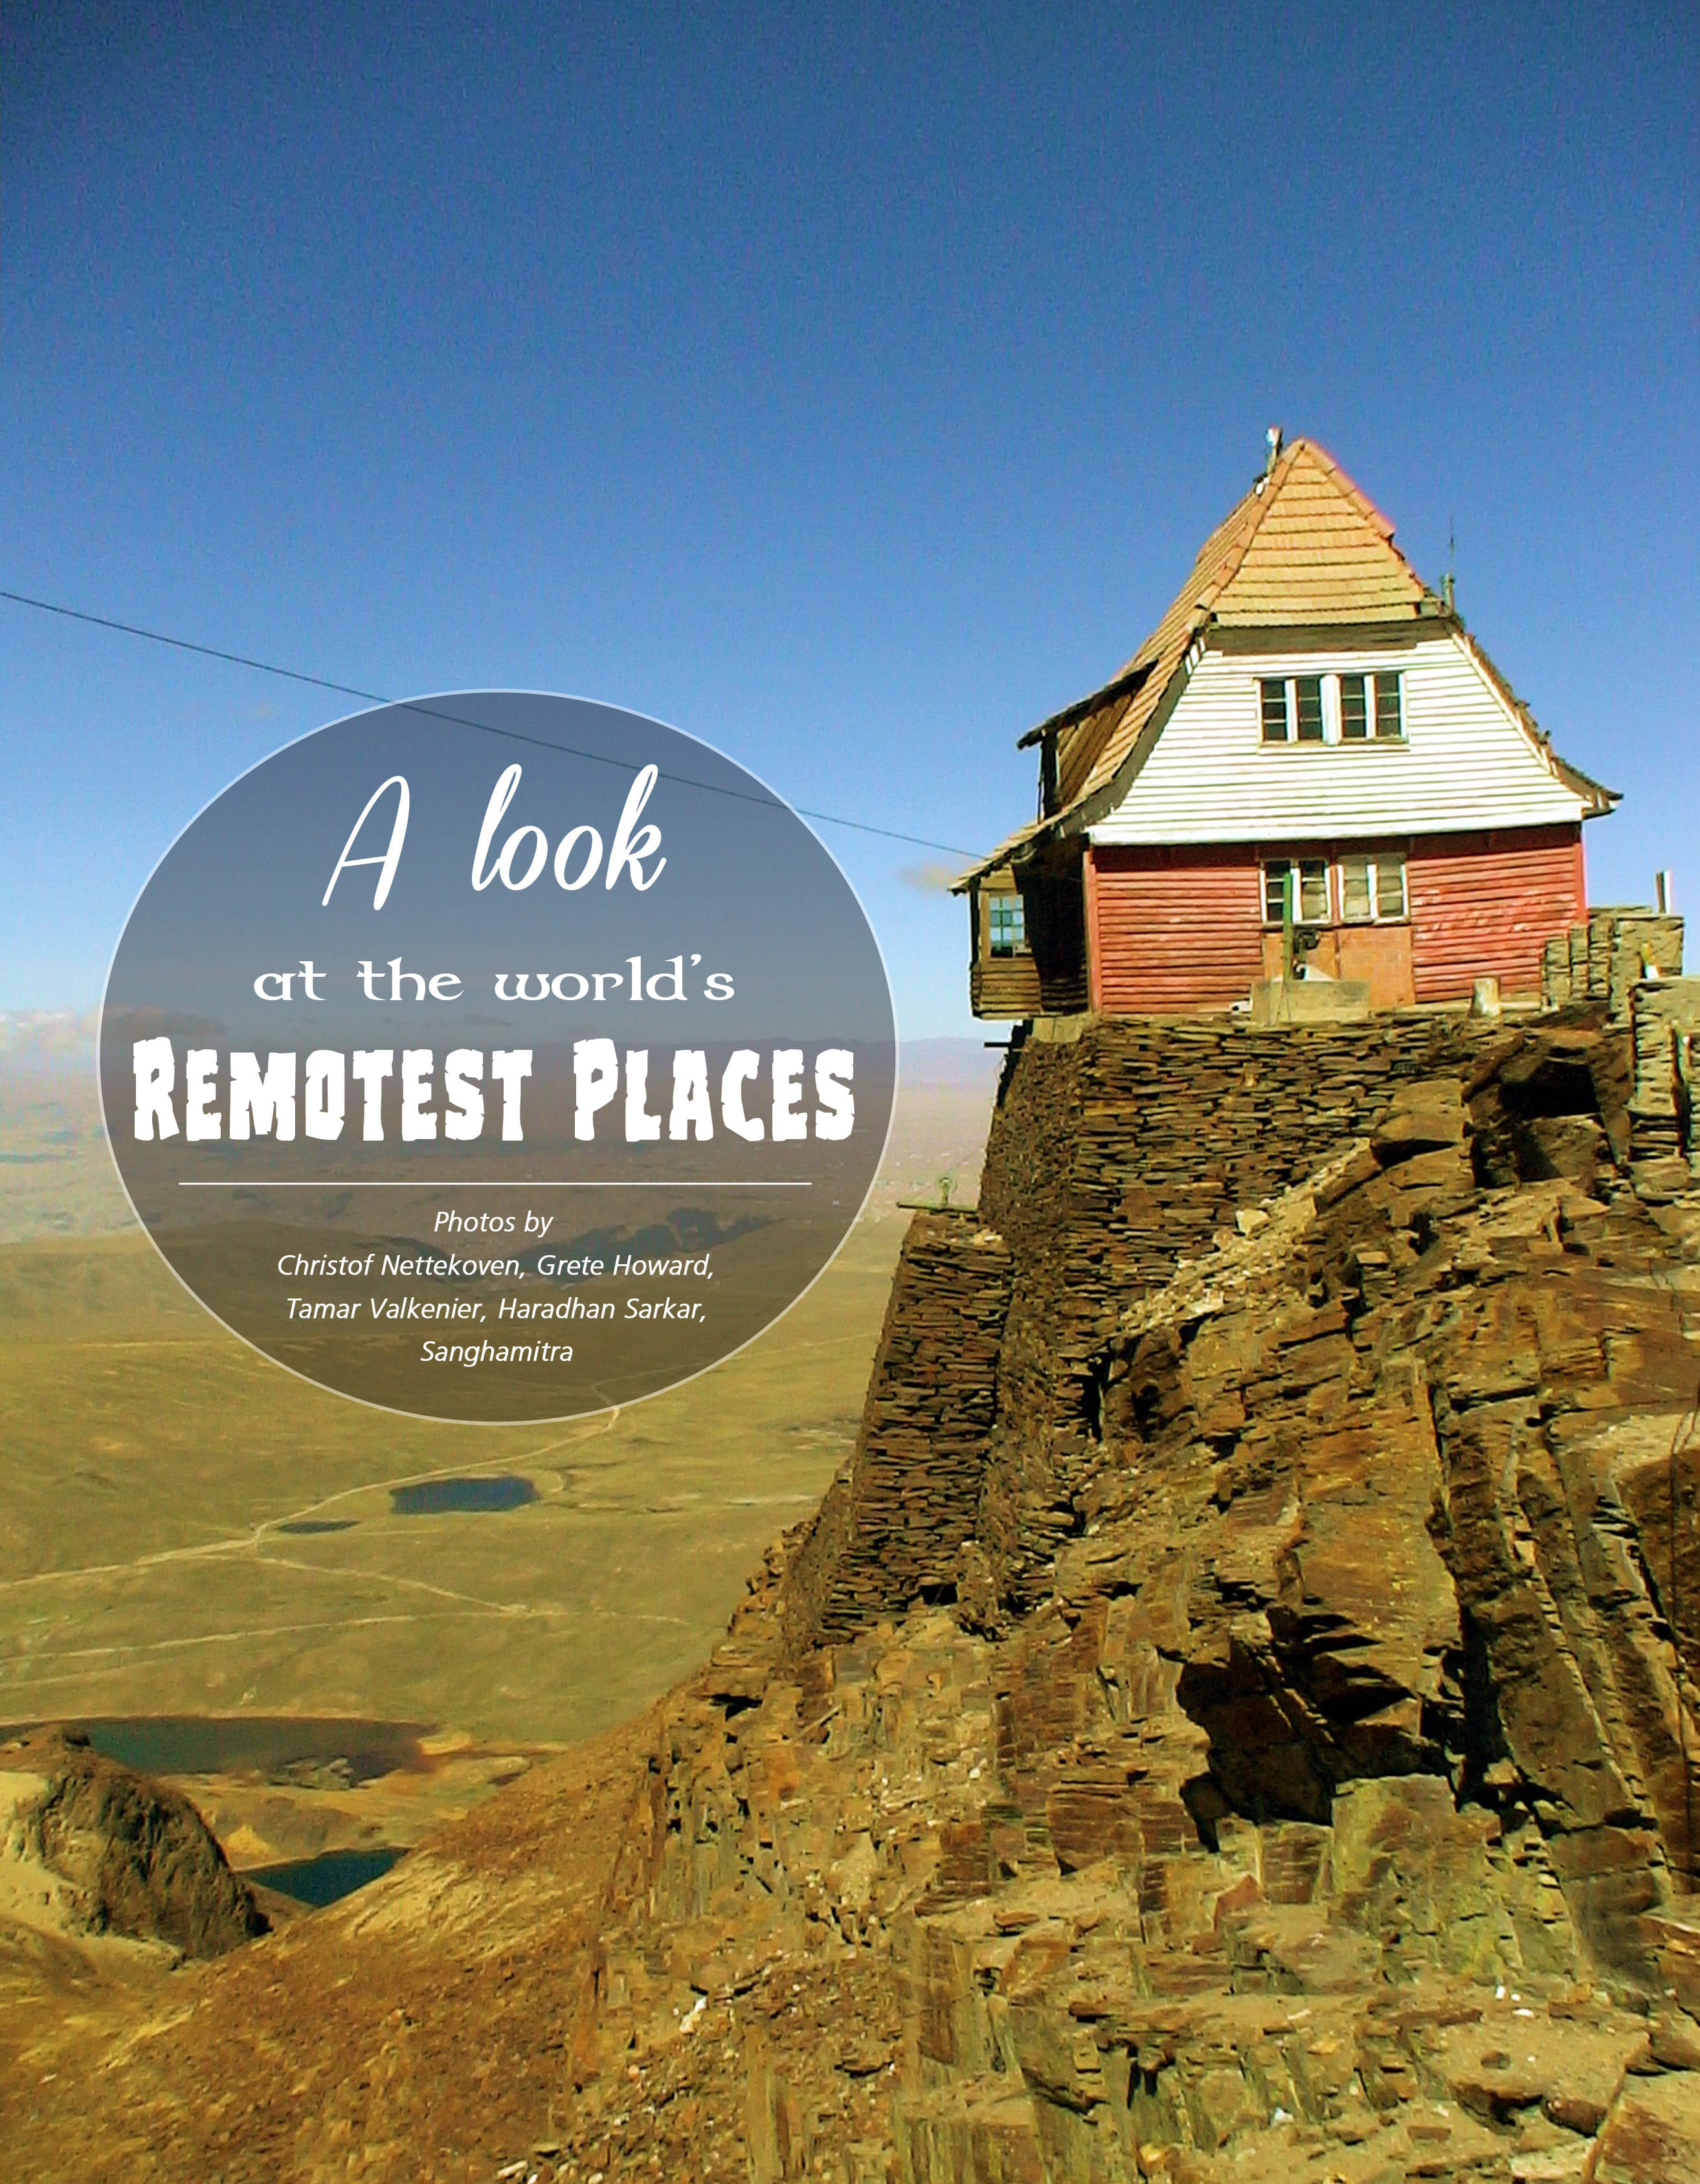 A Look At The World's Remotest Places